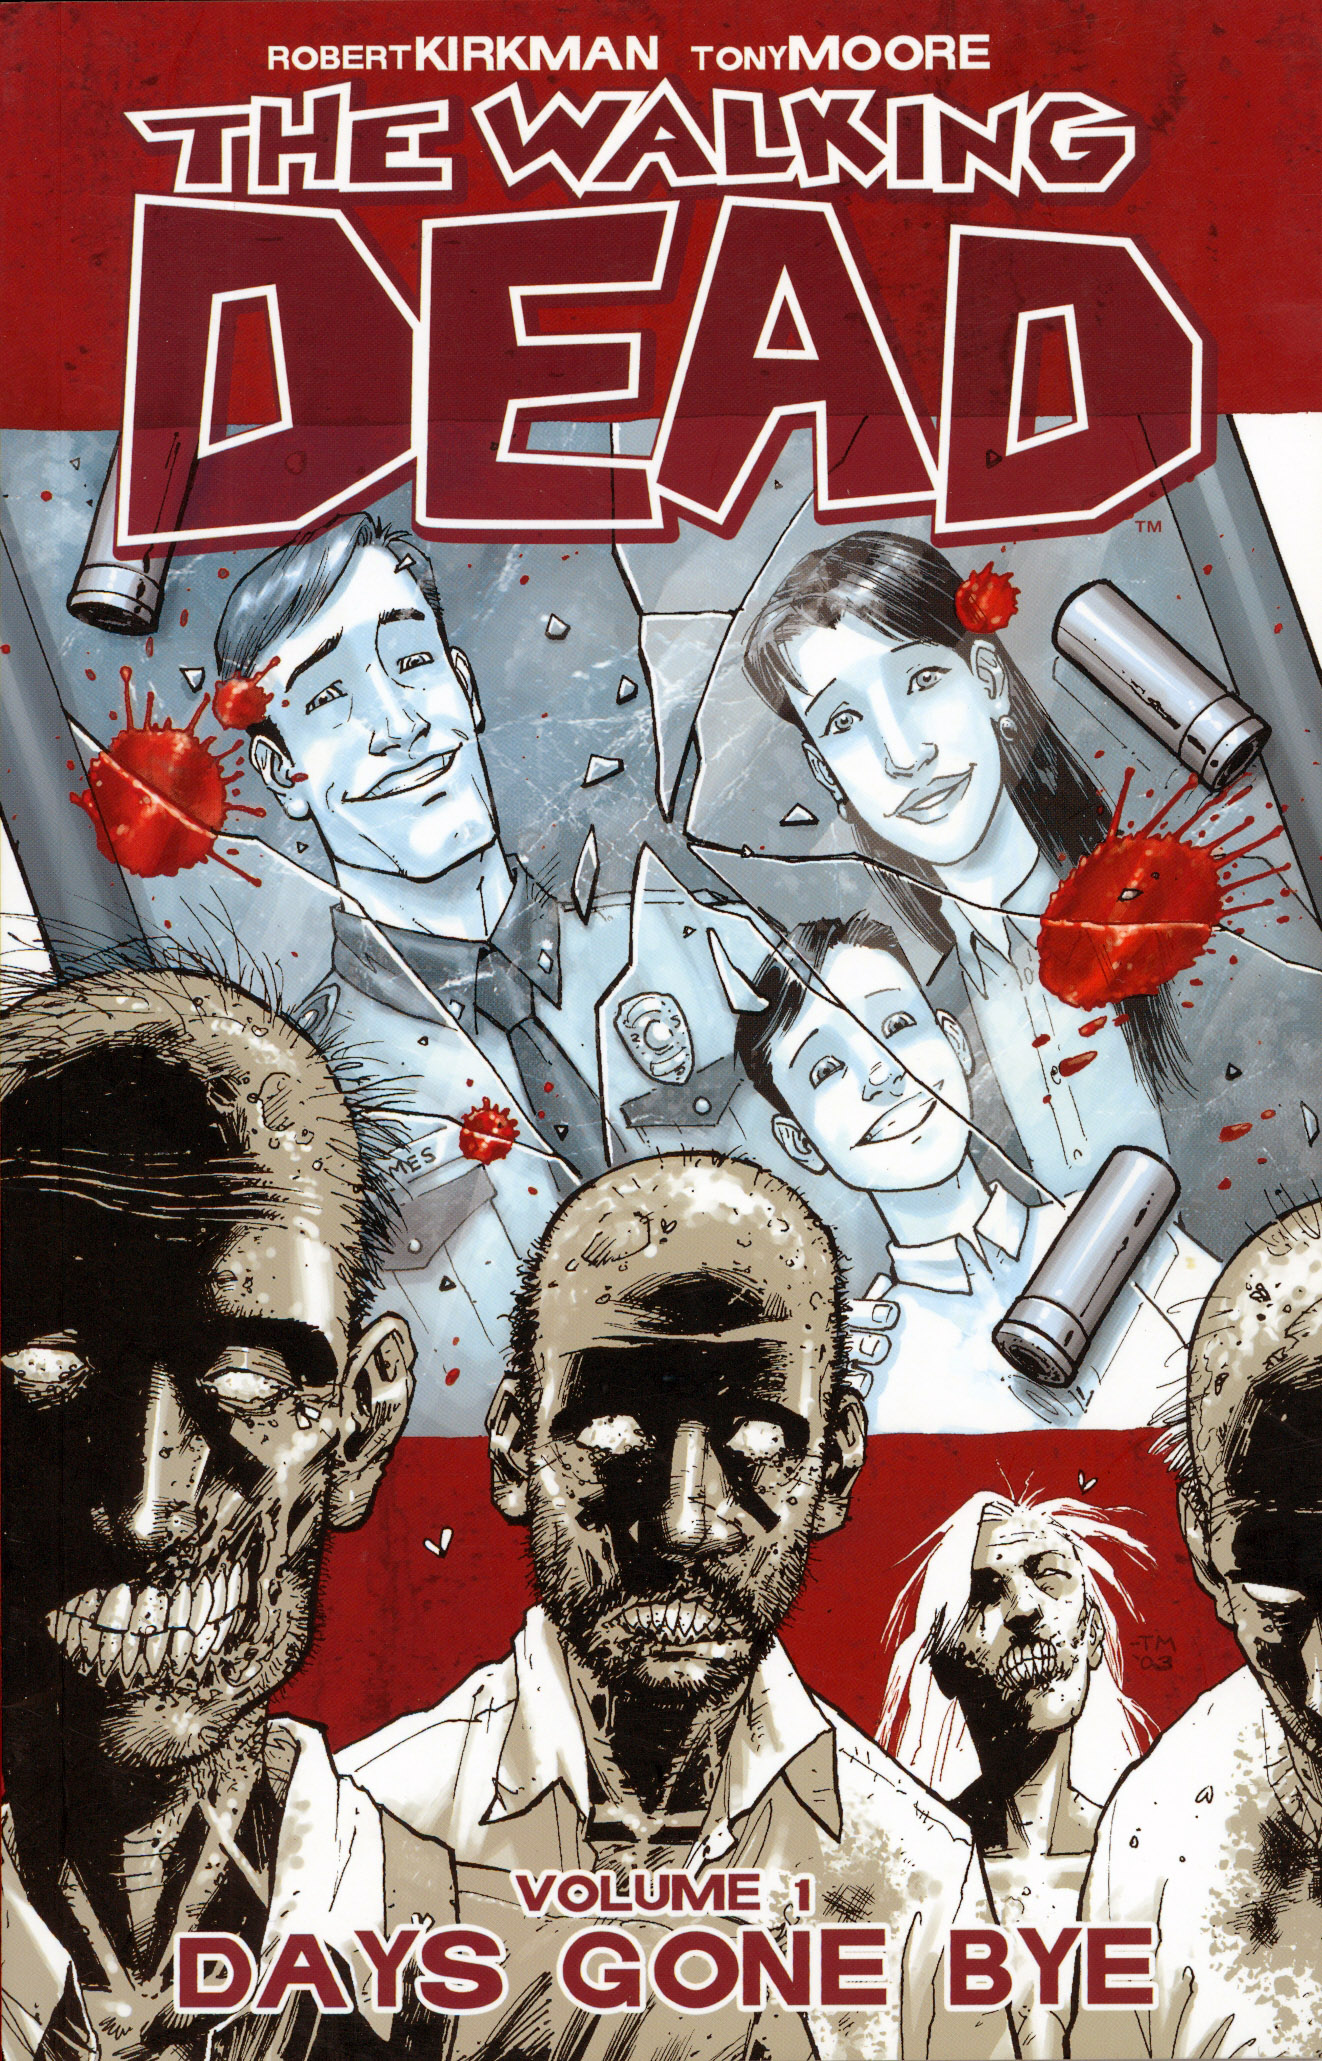 The Walking Dead Graphic Novels/Comices